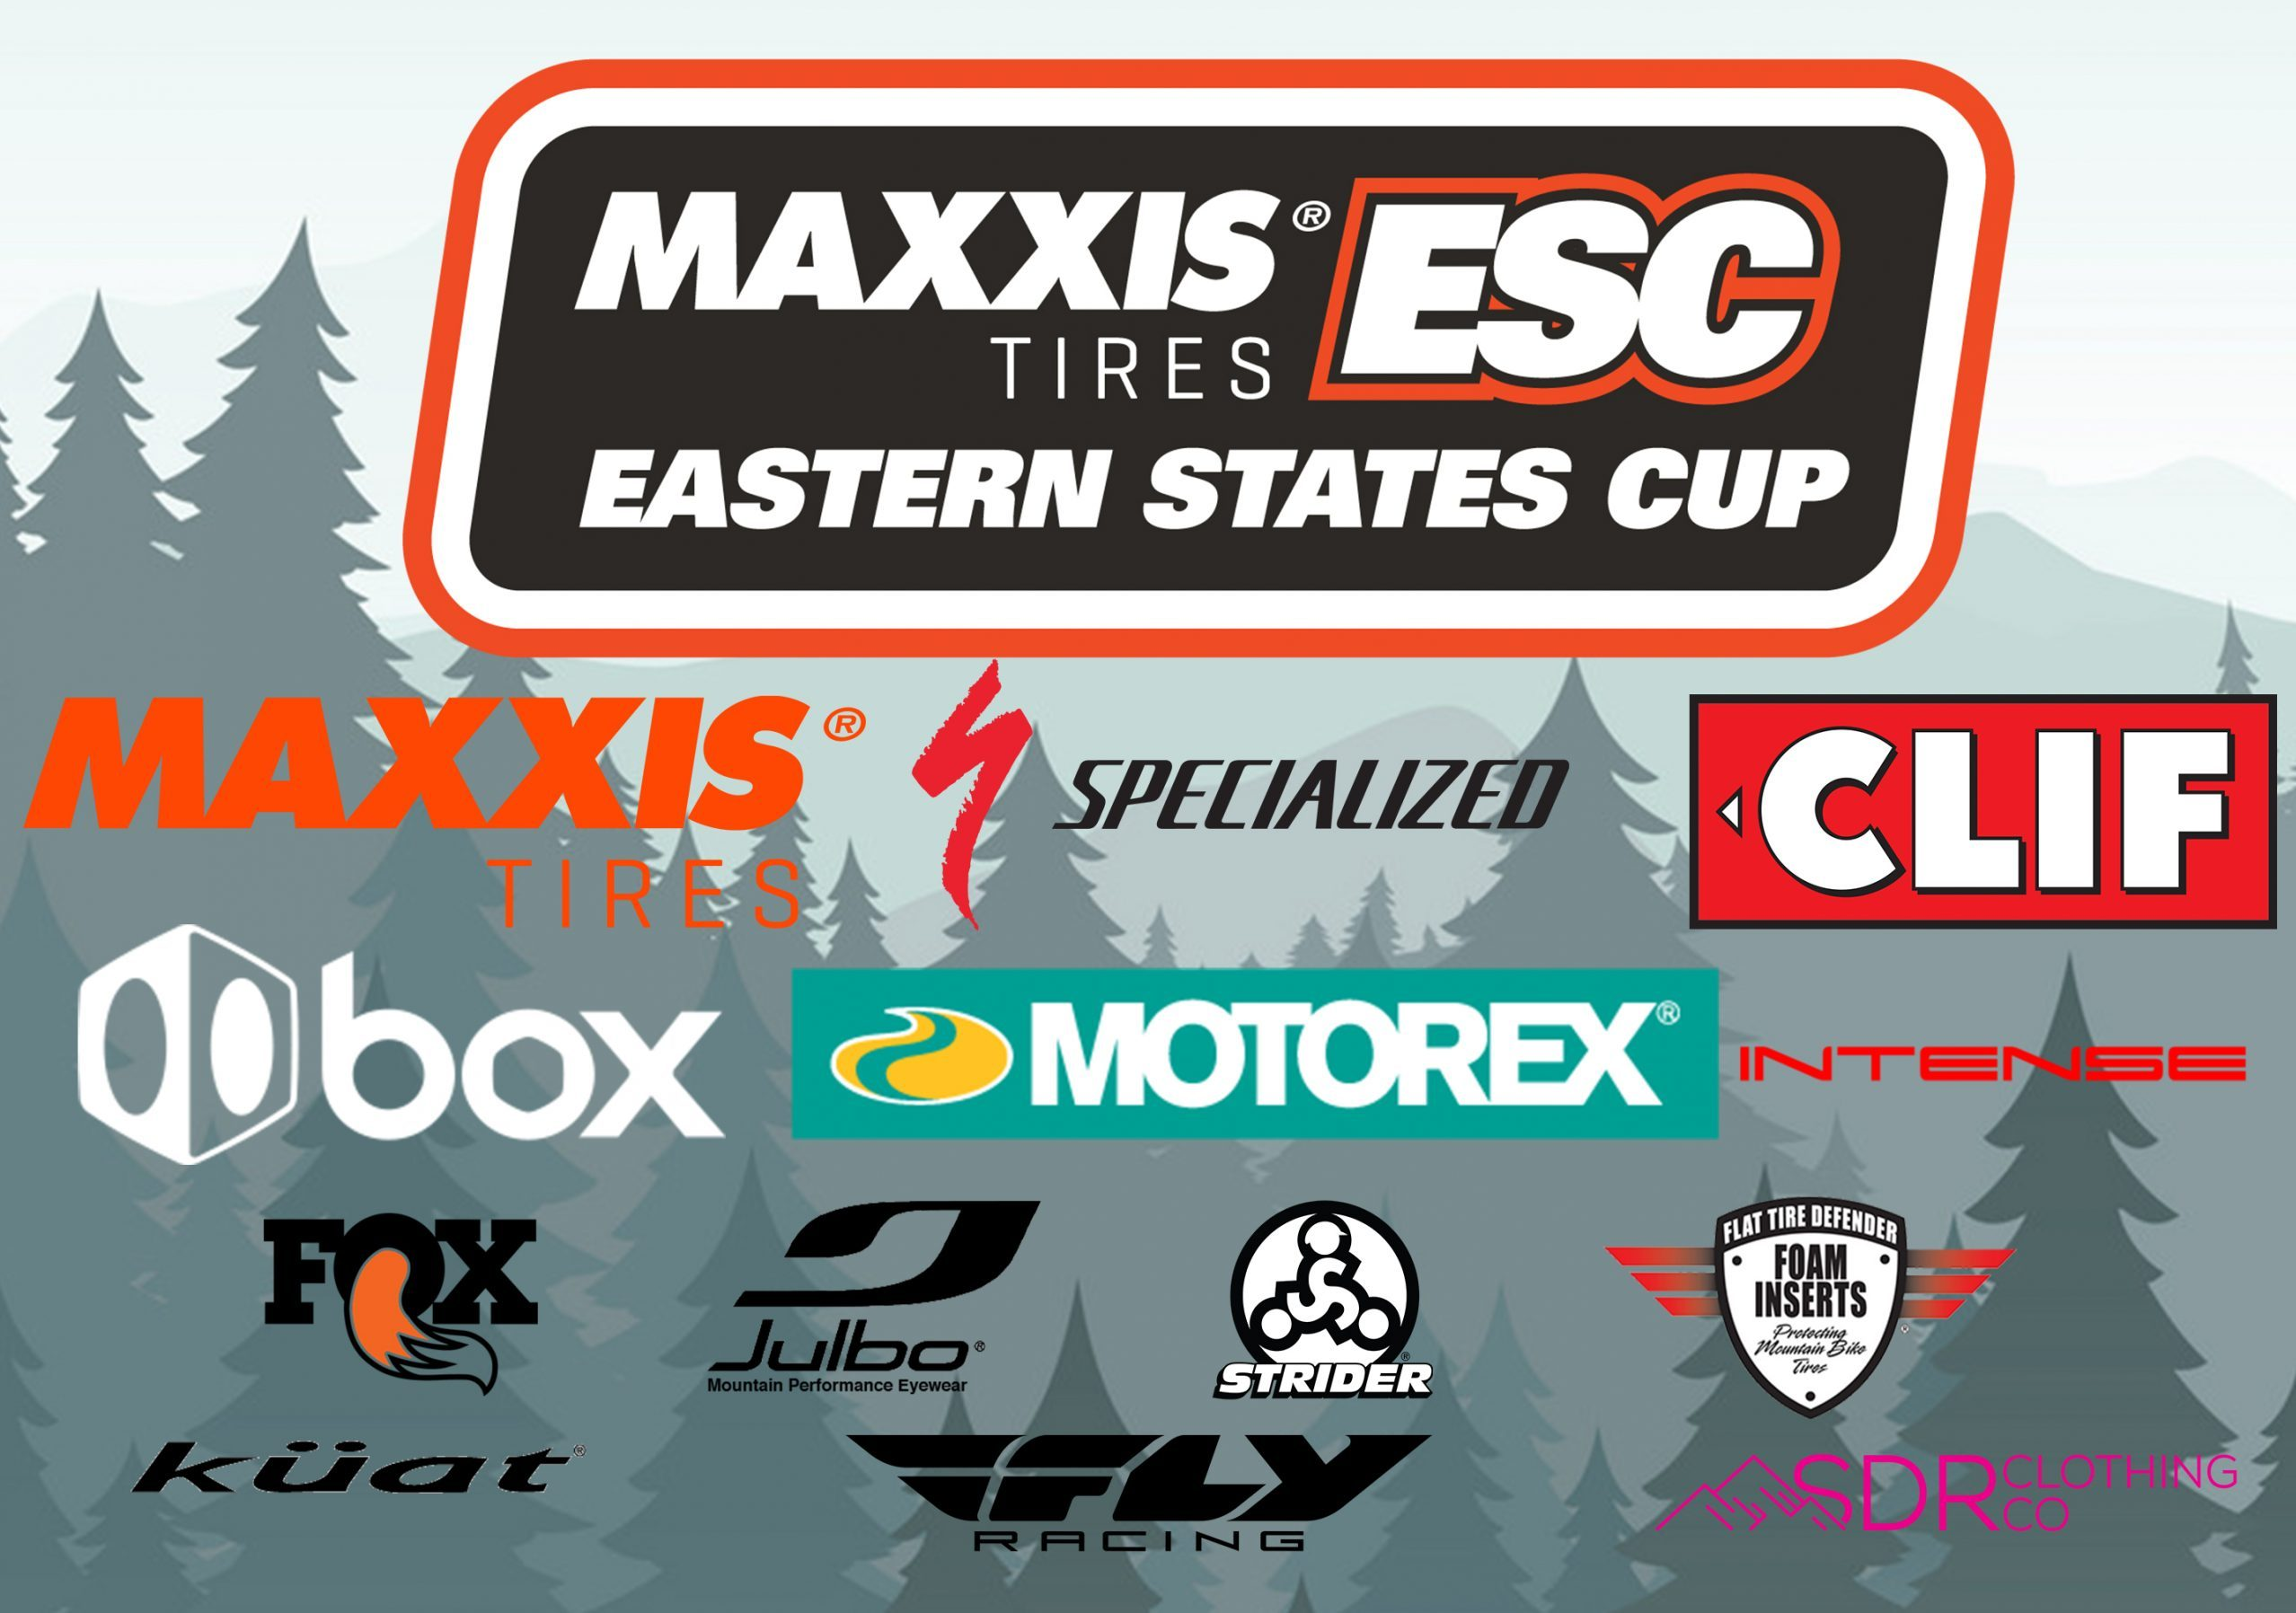 MAXXIS Eastern States Cup